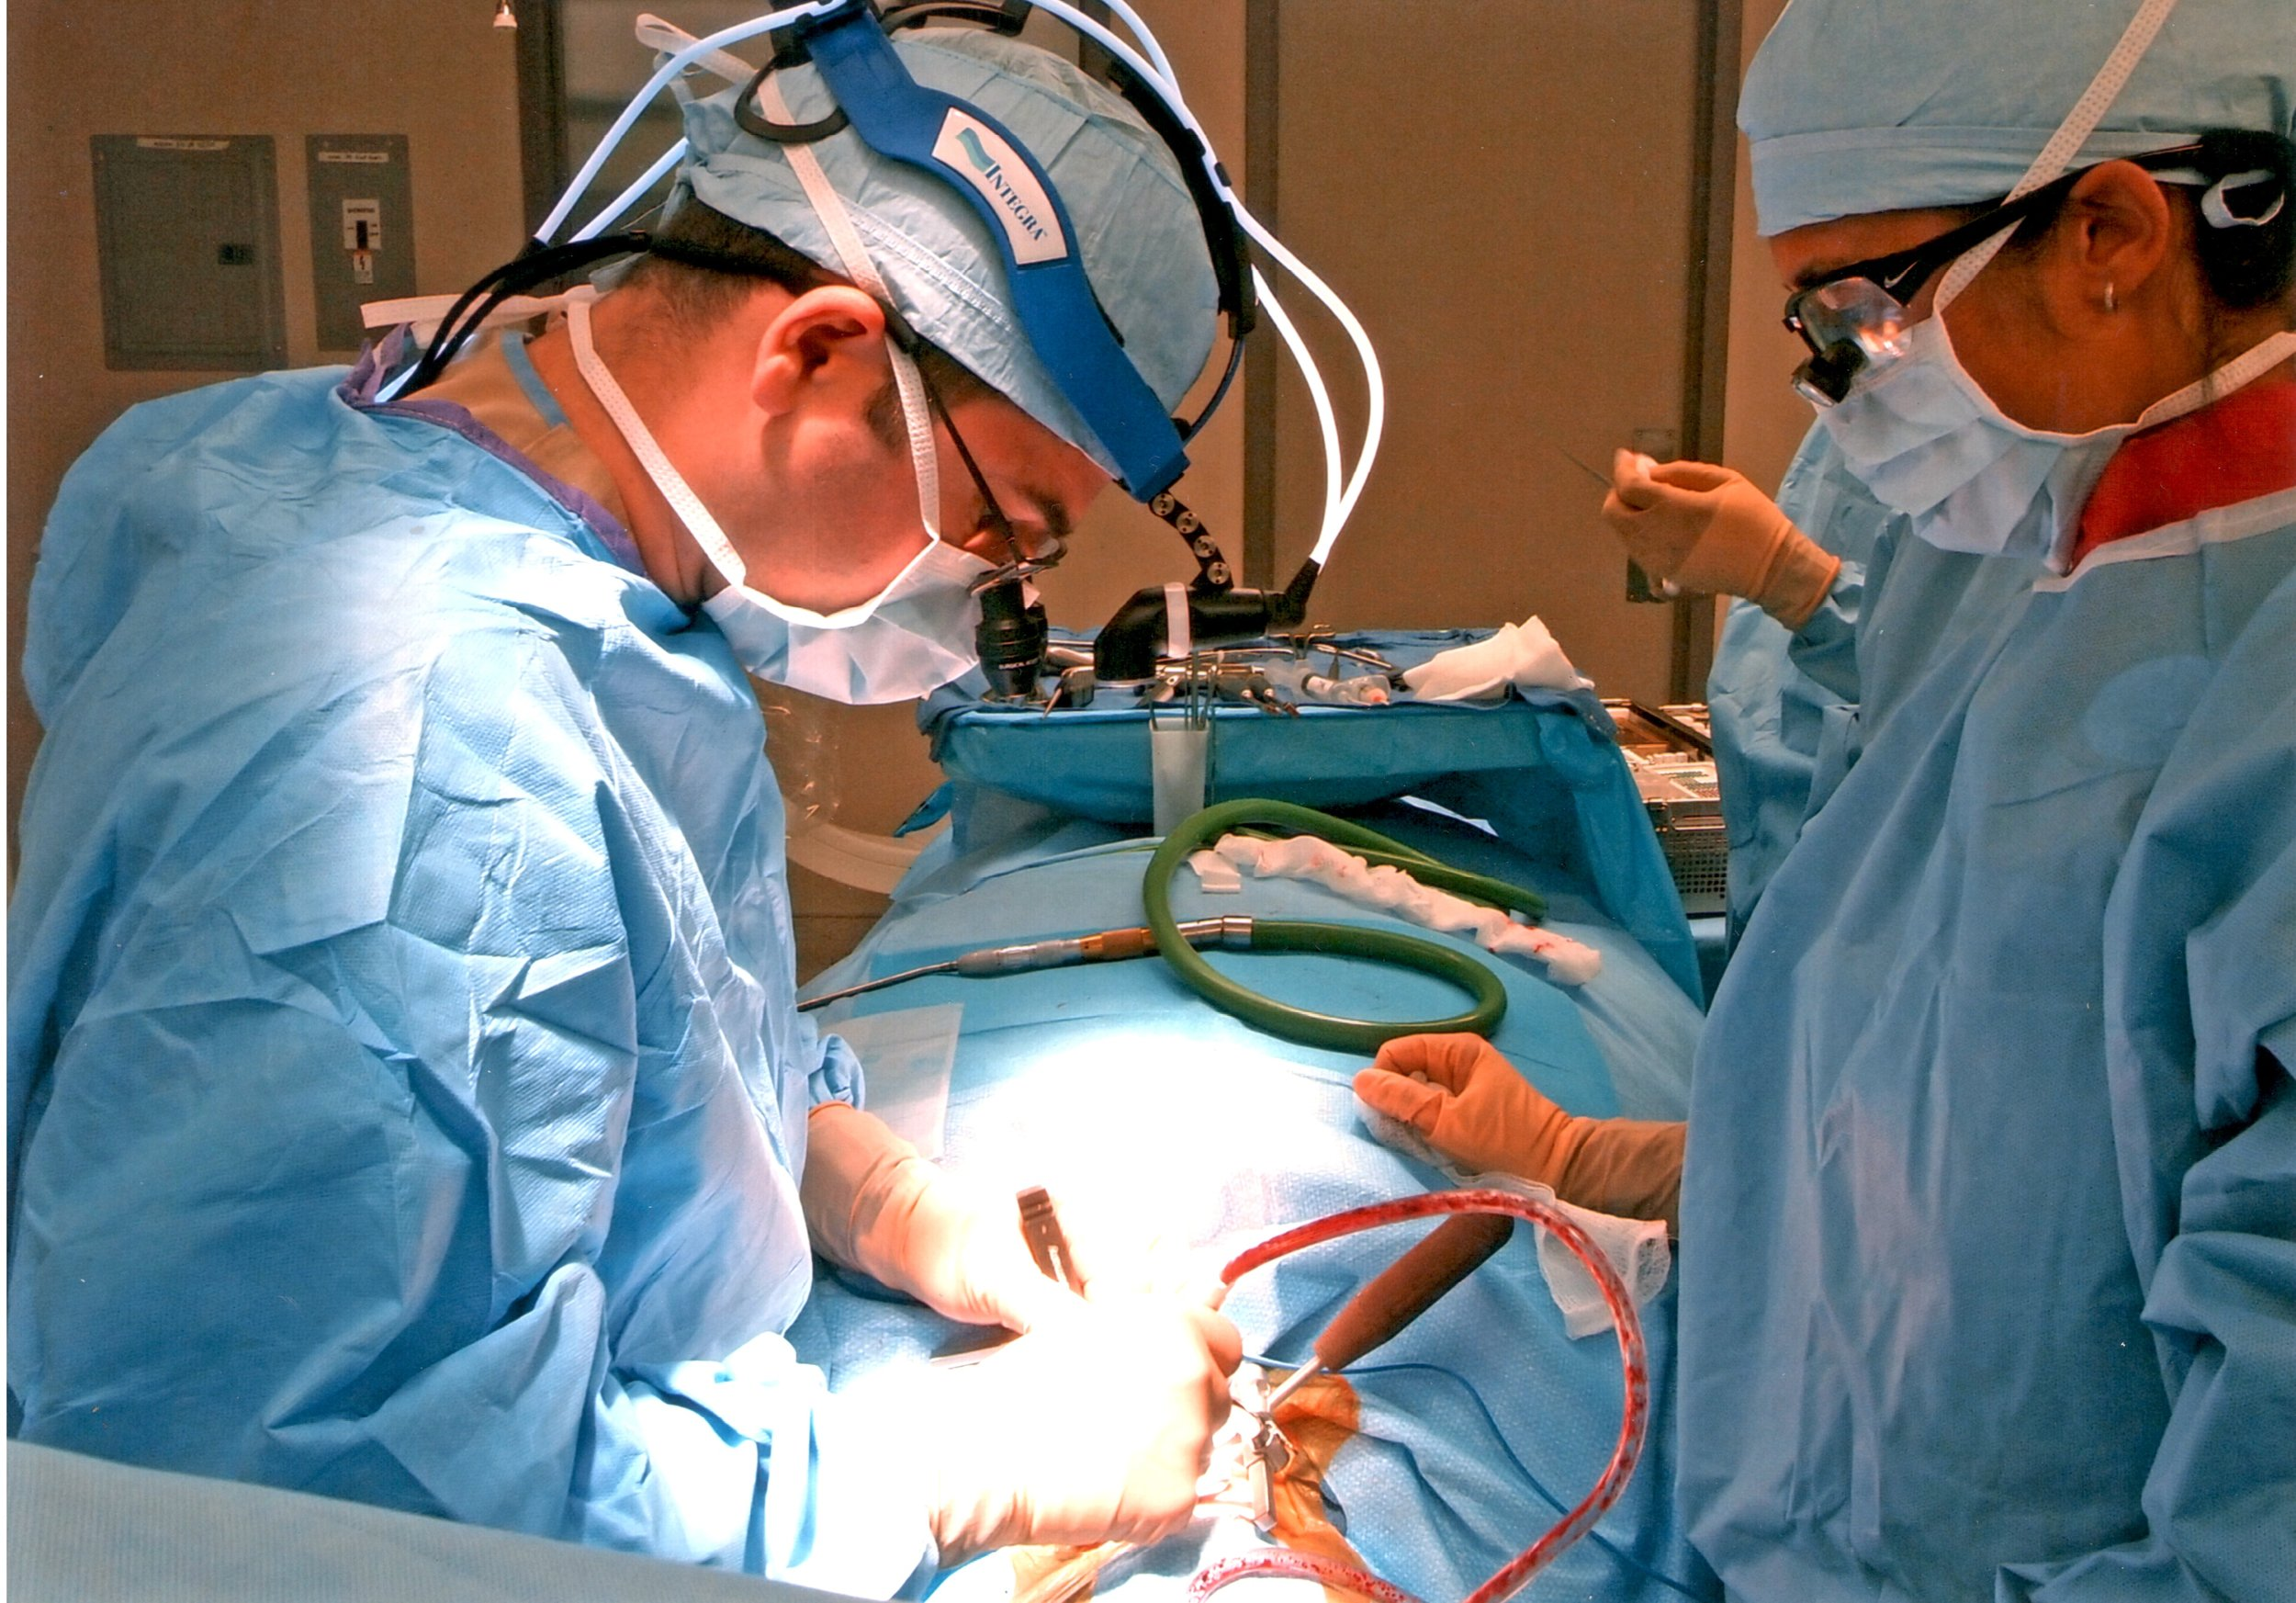 Dr O'Brien specializes in minimally invasive complex spinal surgery.